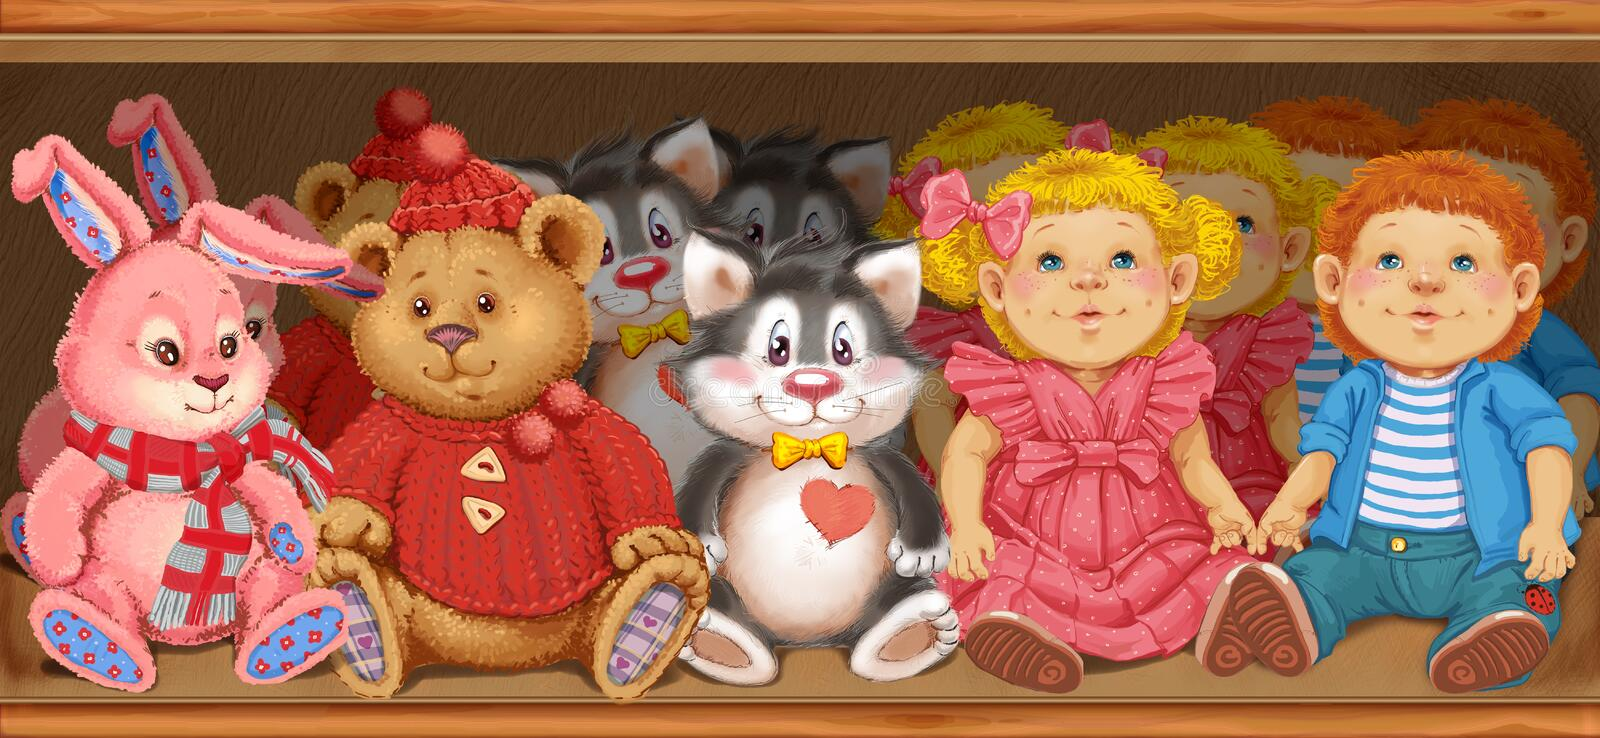 Wooden shelf with children's toys in the store stock illustration